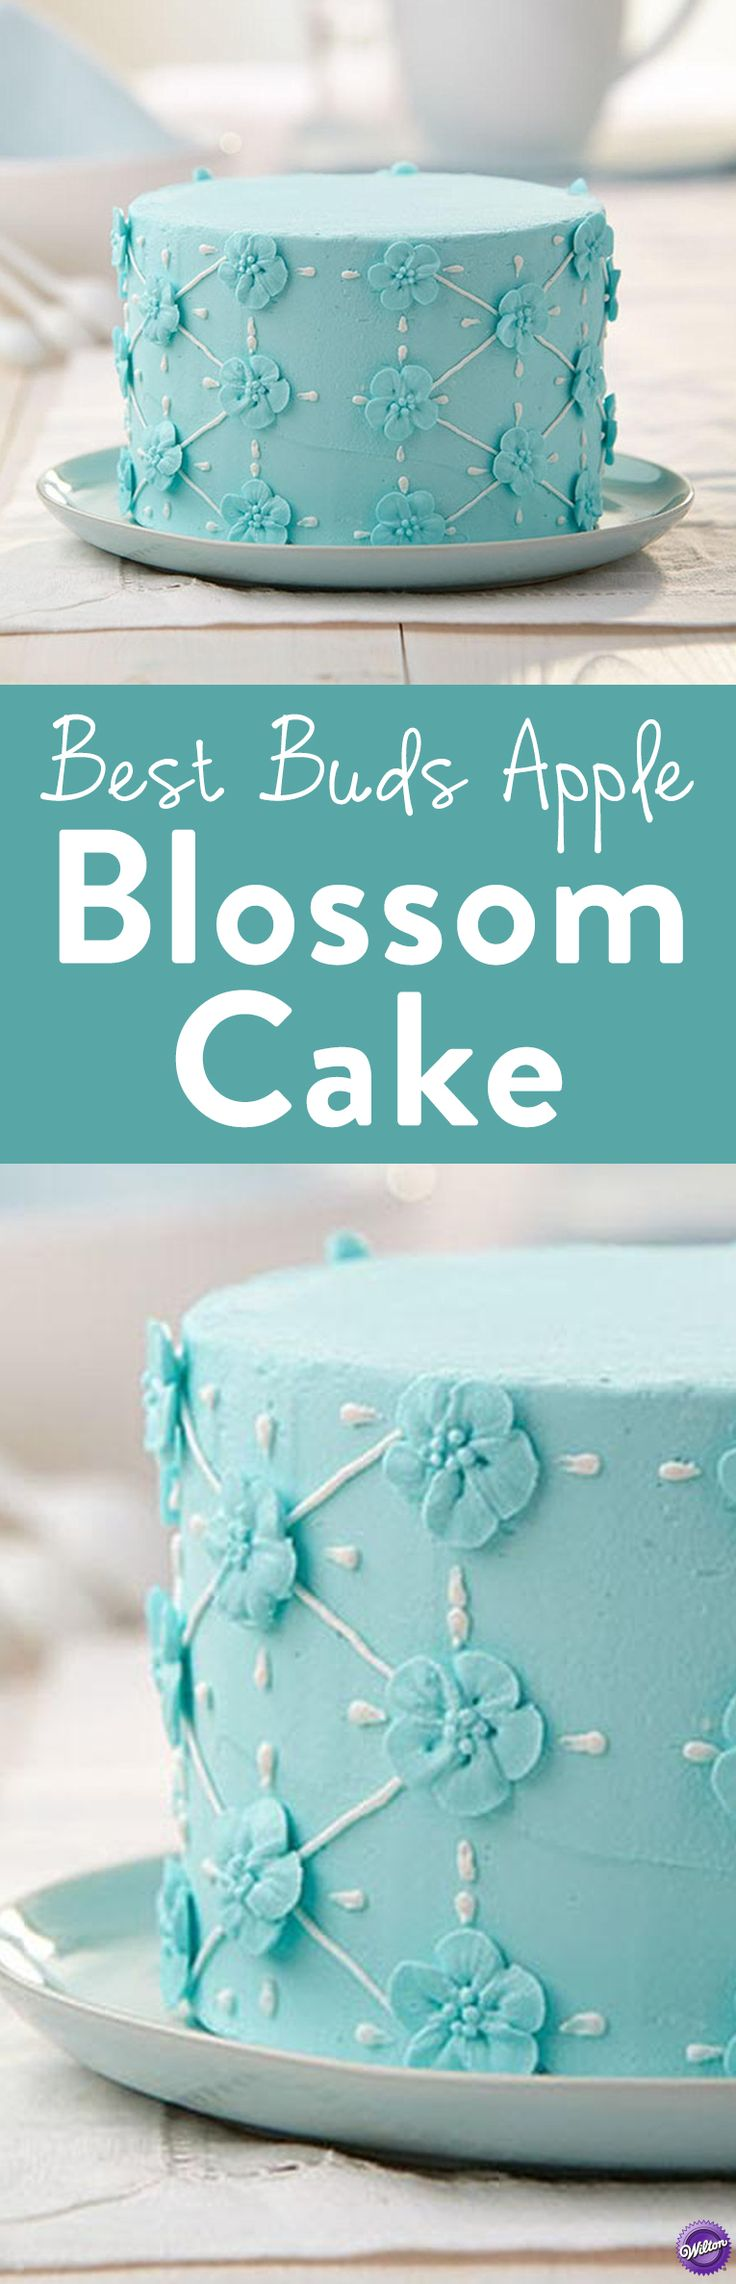 342 best Cakes Fina Needs to Make! images on Pinterest | Birthdays ...